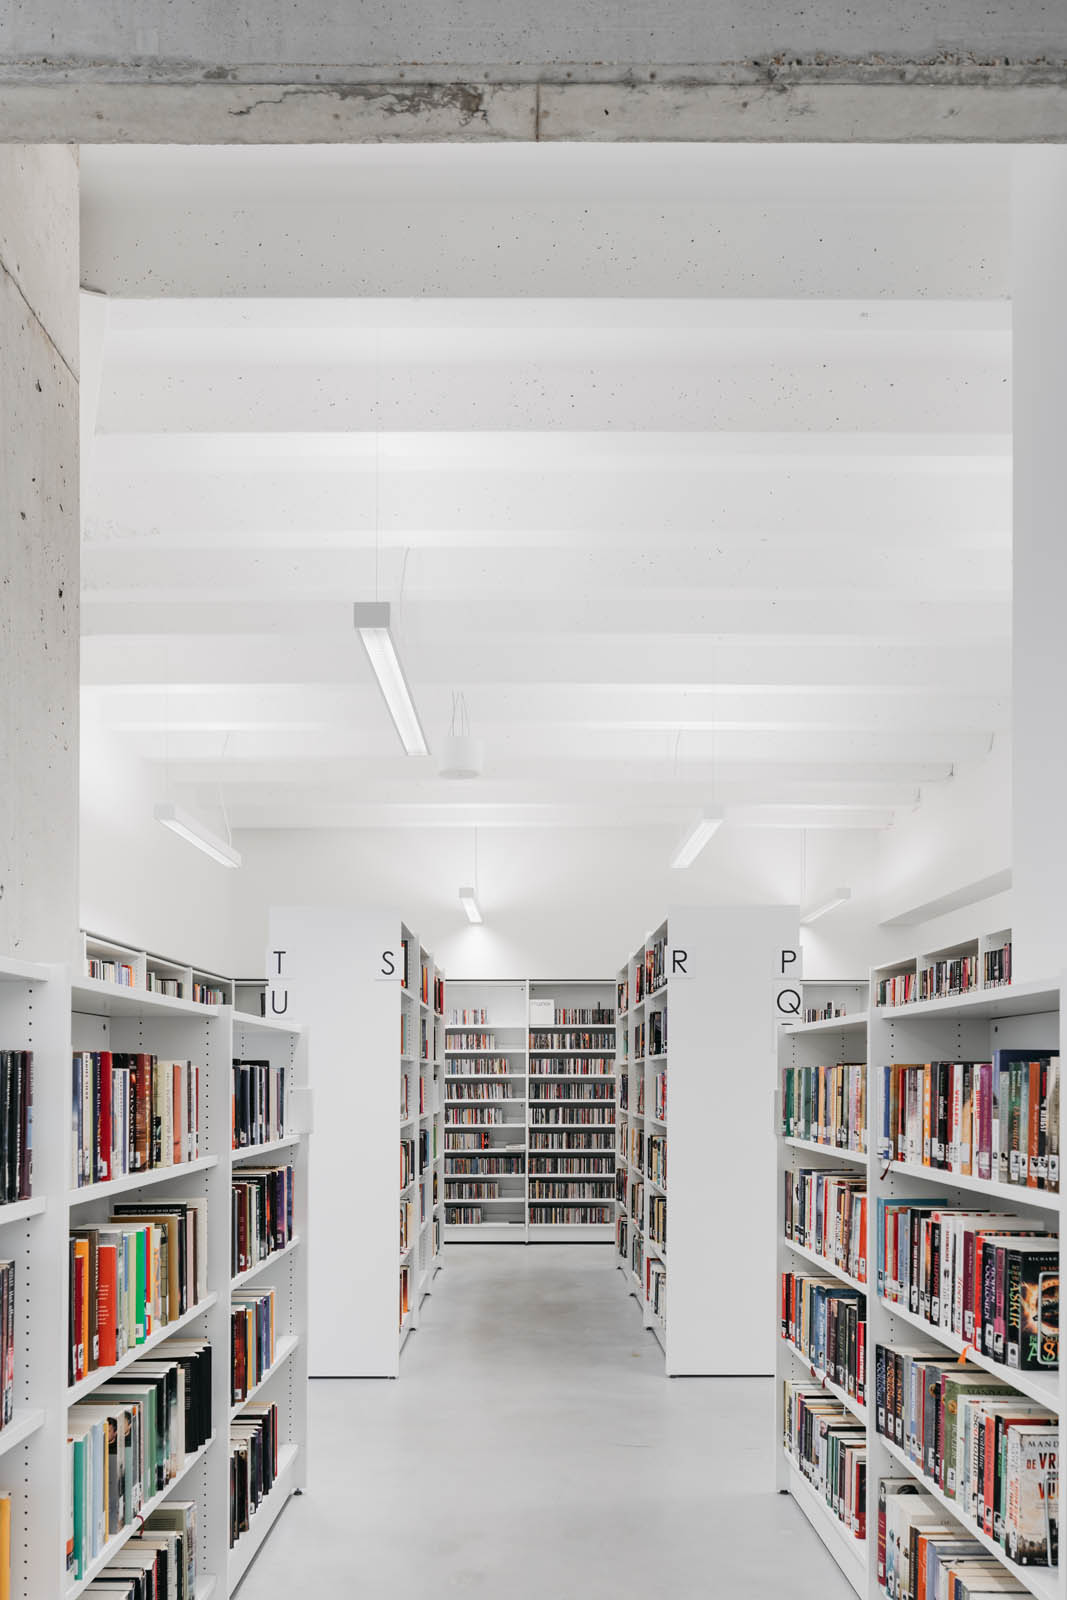 Renovation and expansion of the existing city hall and library of Nijlen by Cuypers & Q architecten.